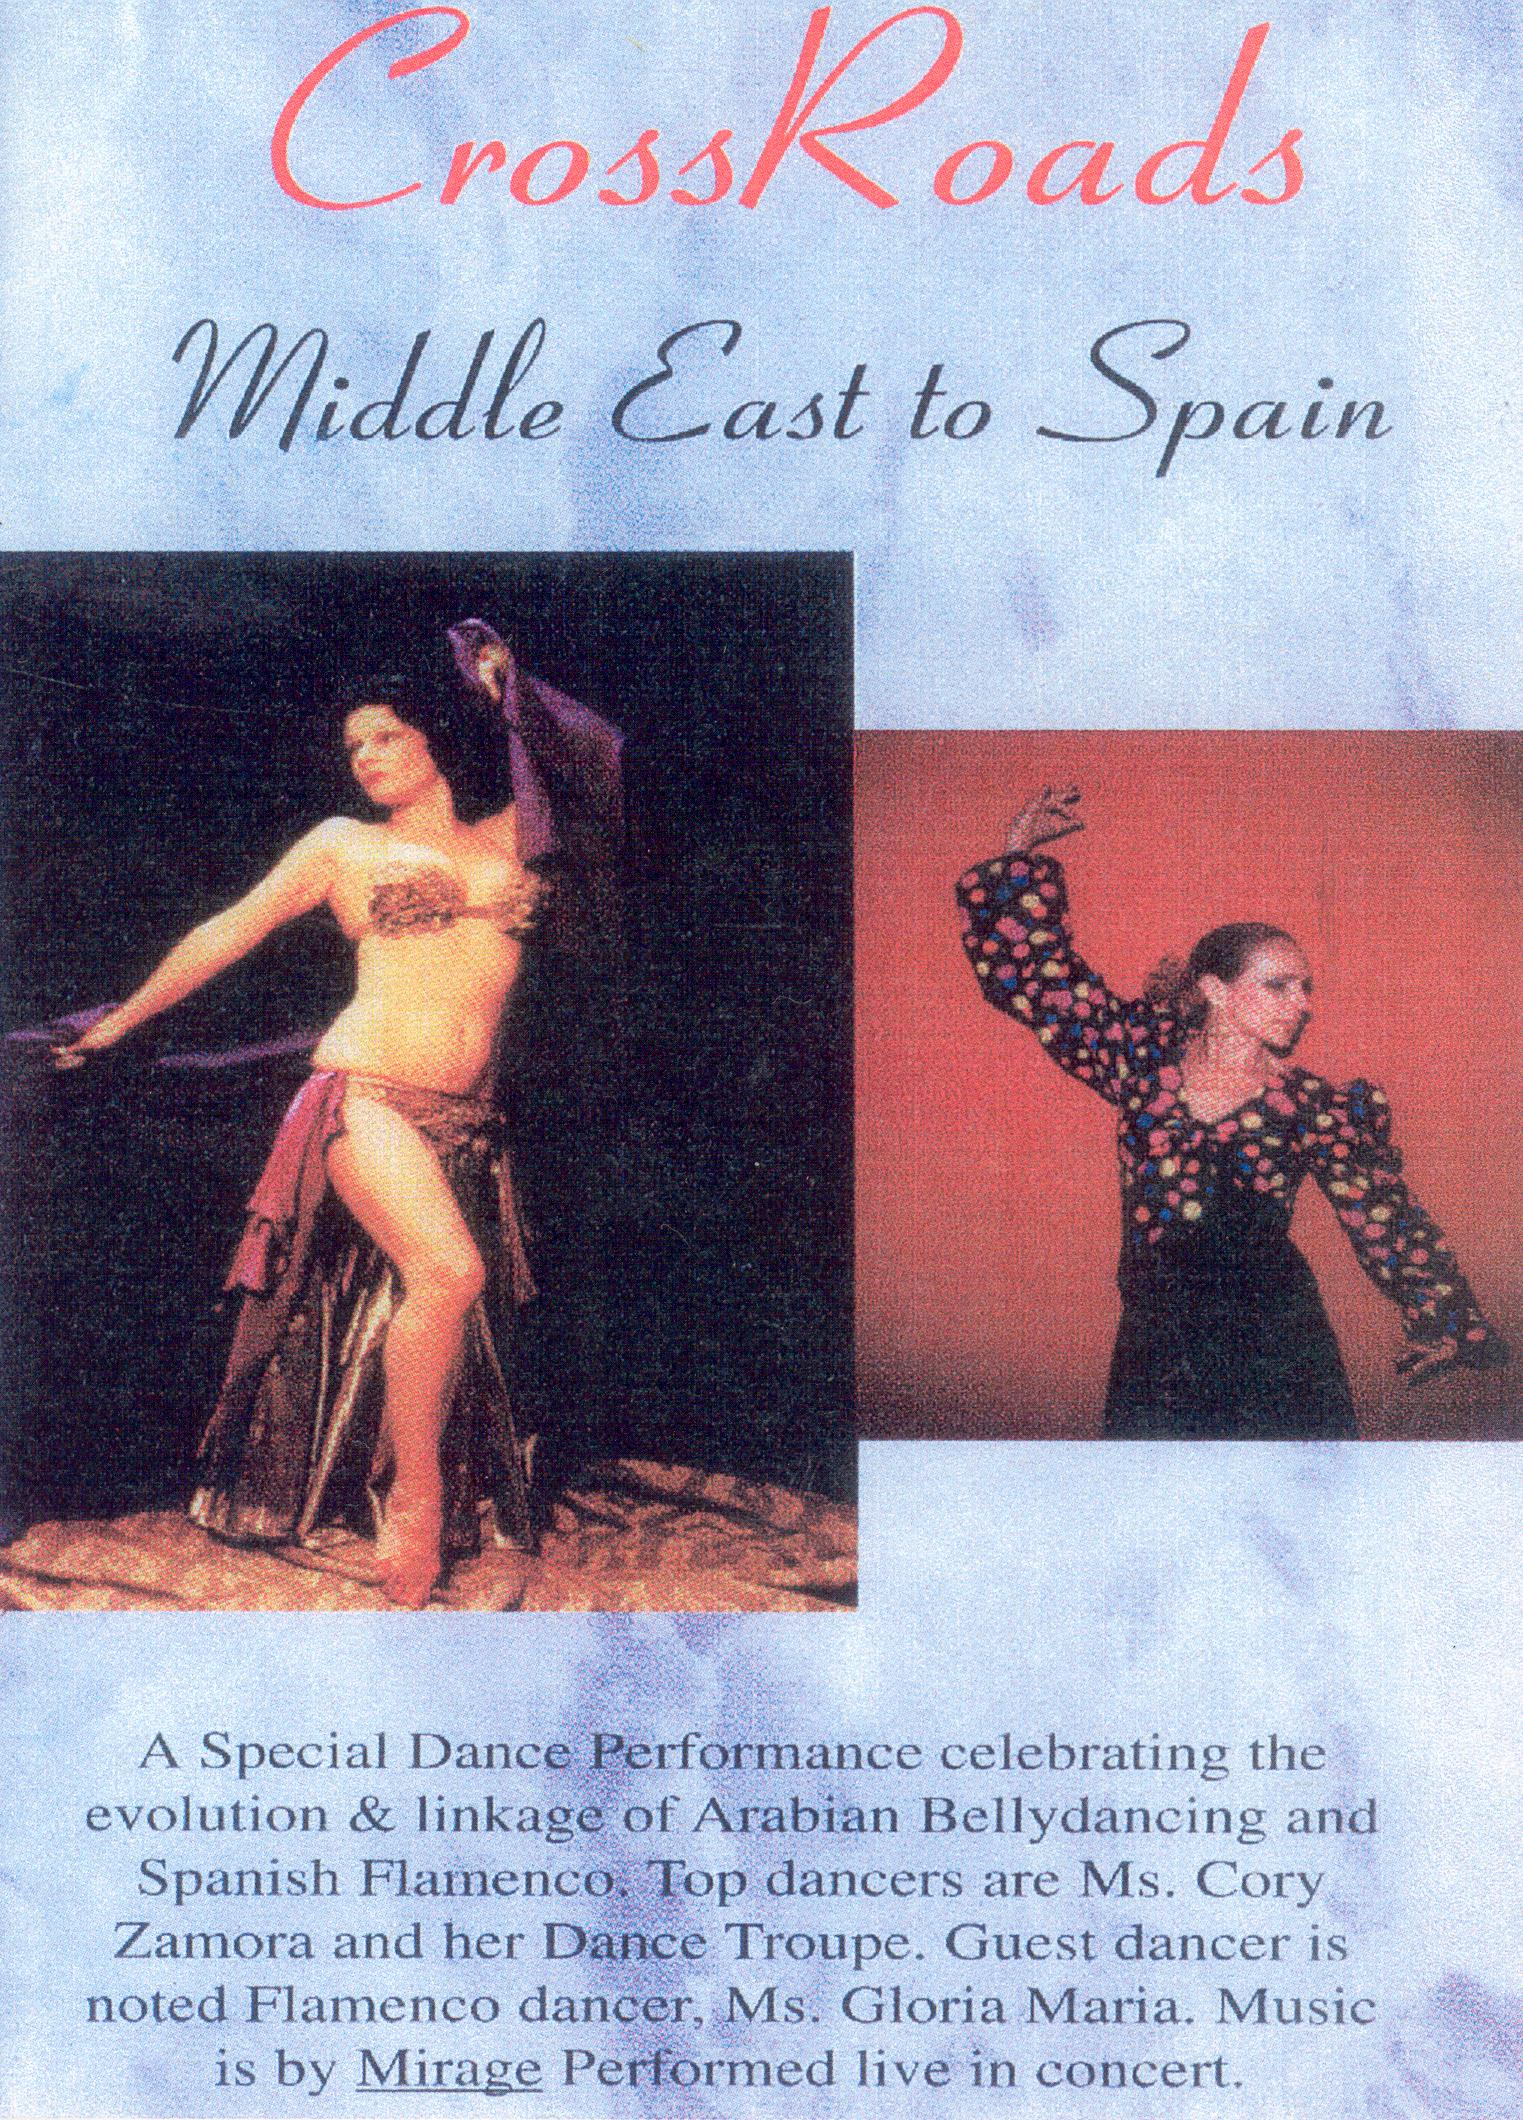 CrossRoads: Middle East to Spain - Flamenco Passion & Classical Bellydancing